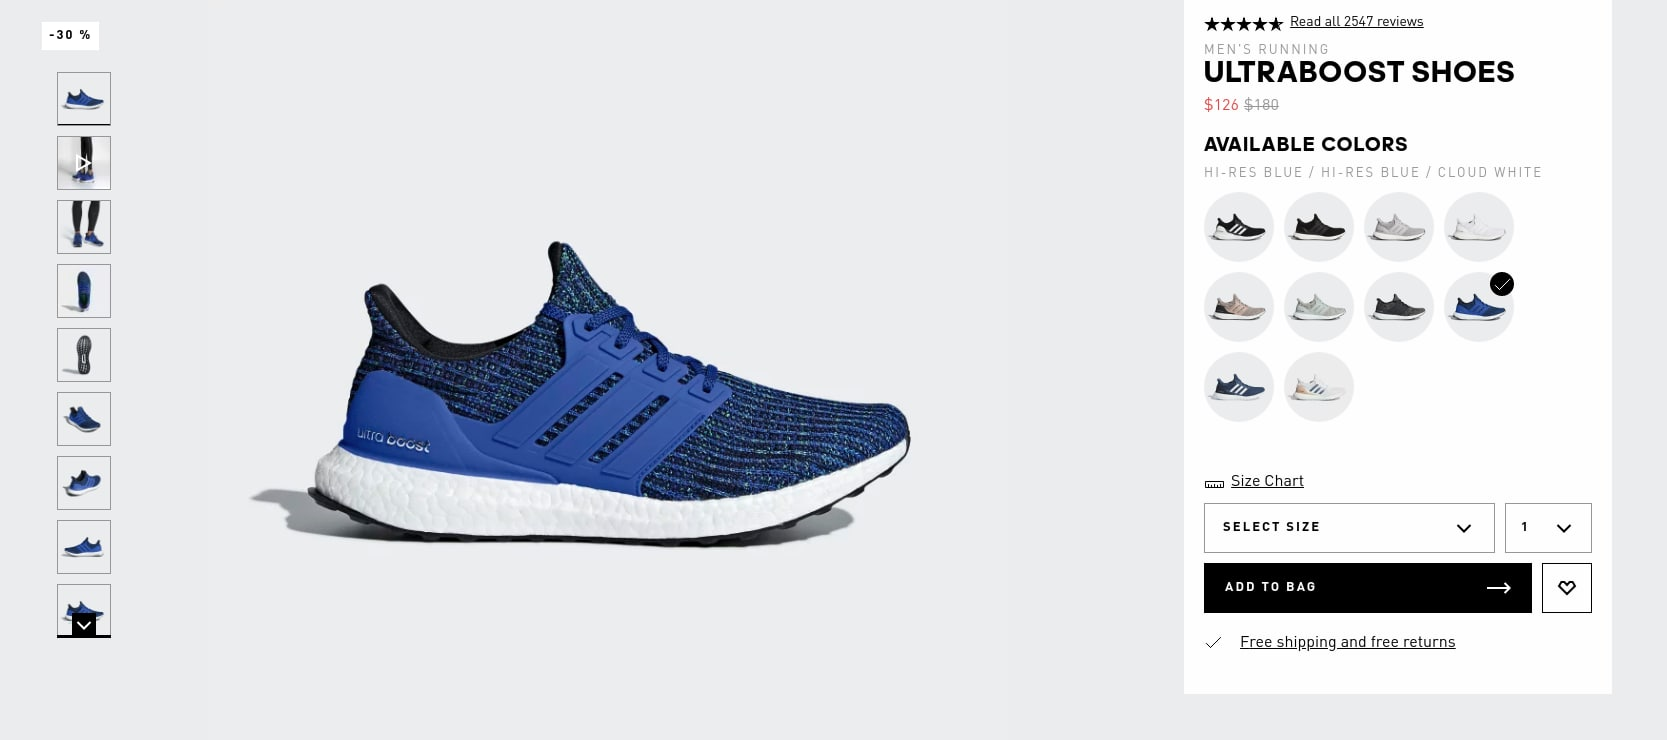 a2448a77c Hi-res Blue Adidas Ultraboost shoes  126 - Slickdeals.net